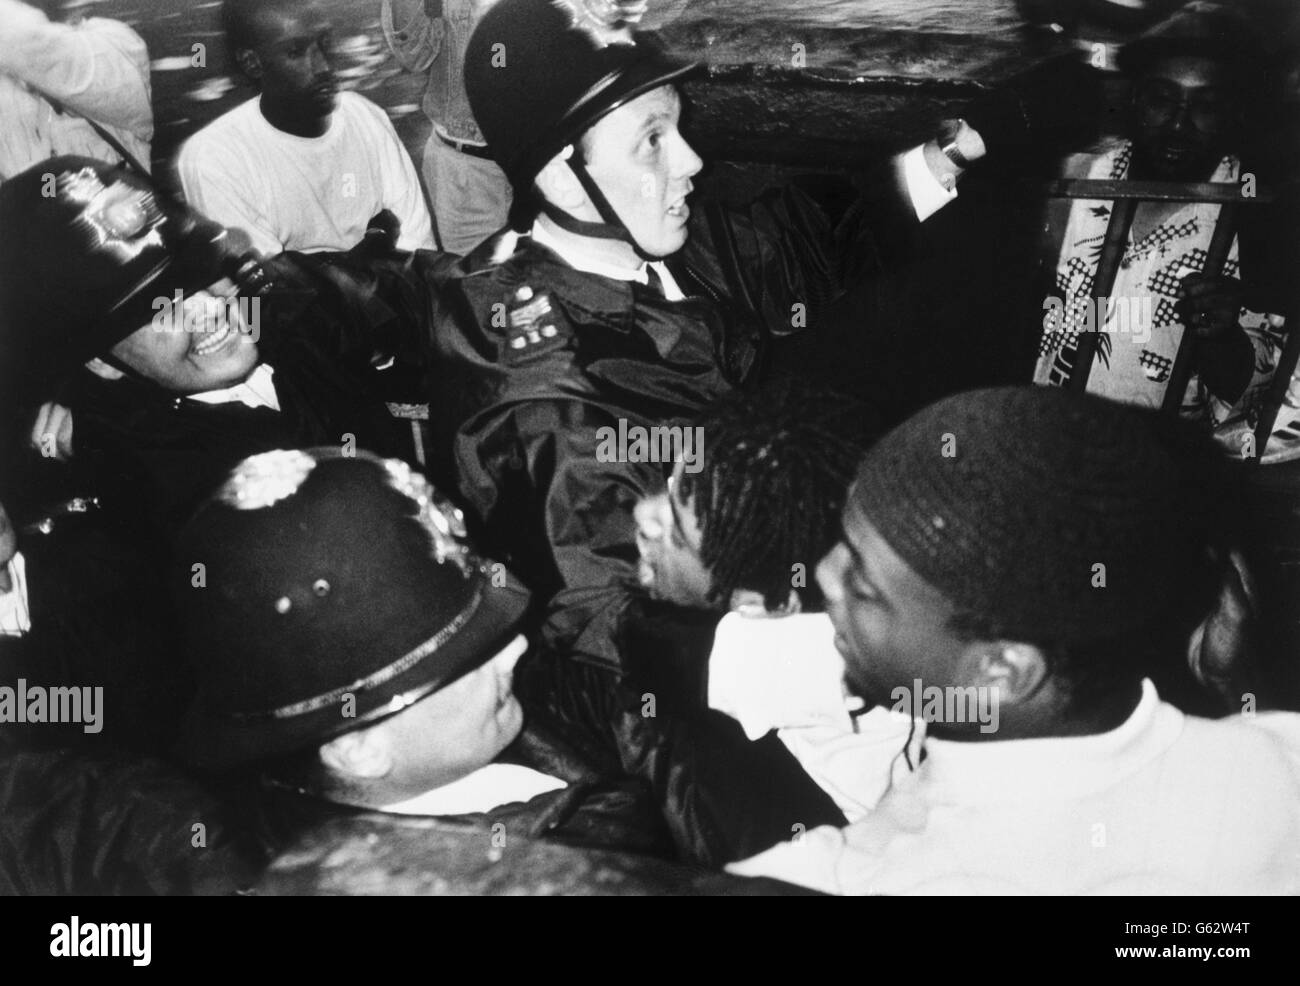 Notting Hill Carnival - Trouble - London - 1989 - Stock Image